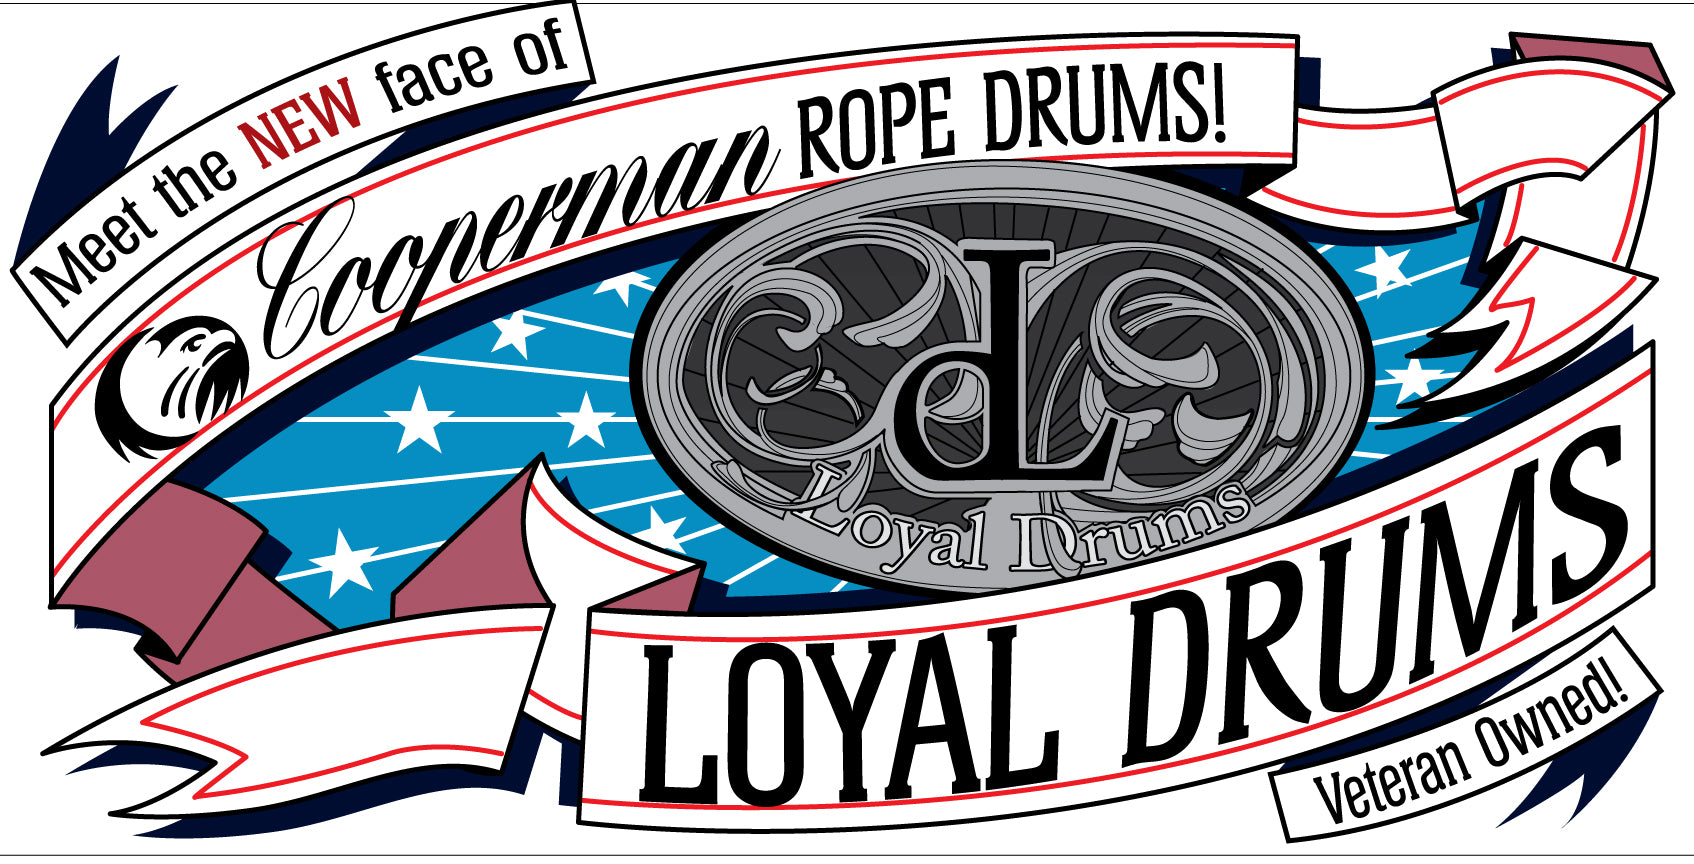 Cooperman Rope Drums Announcement